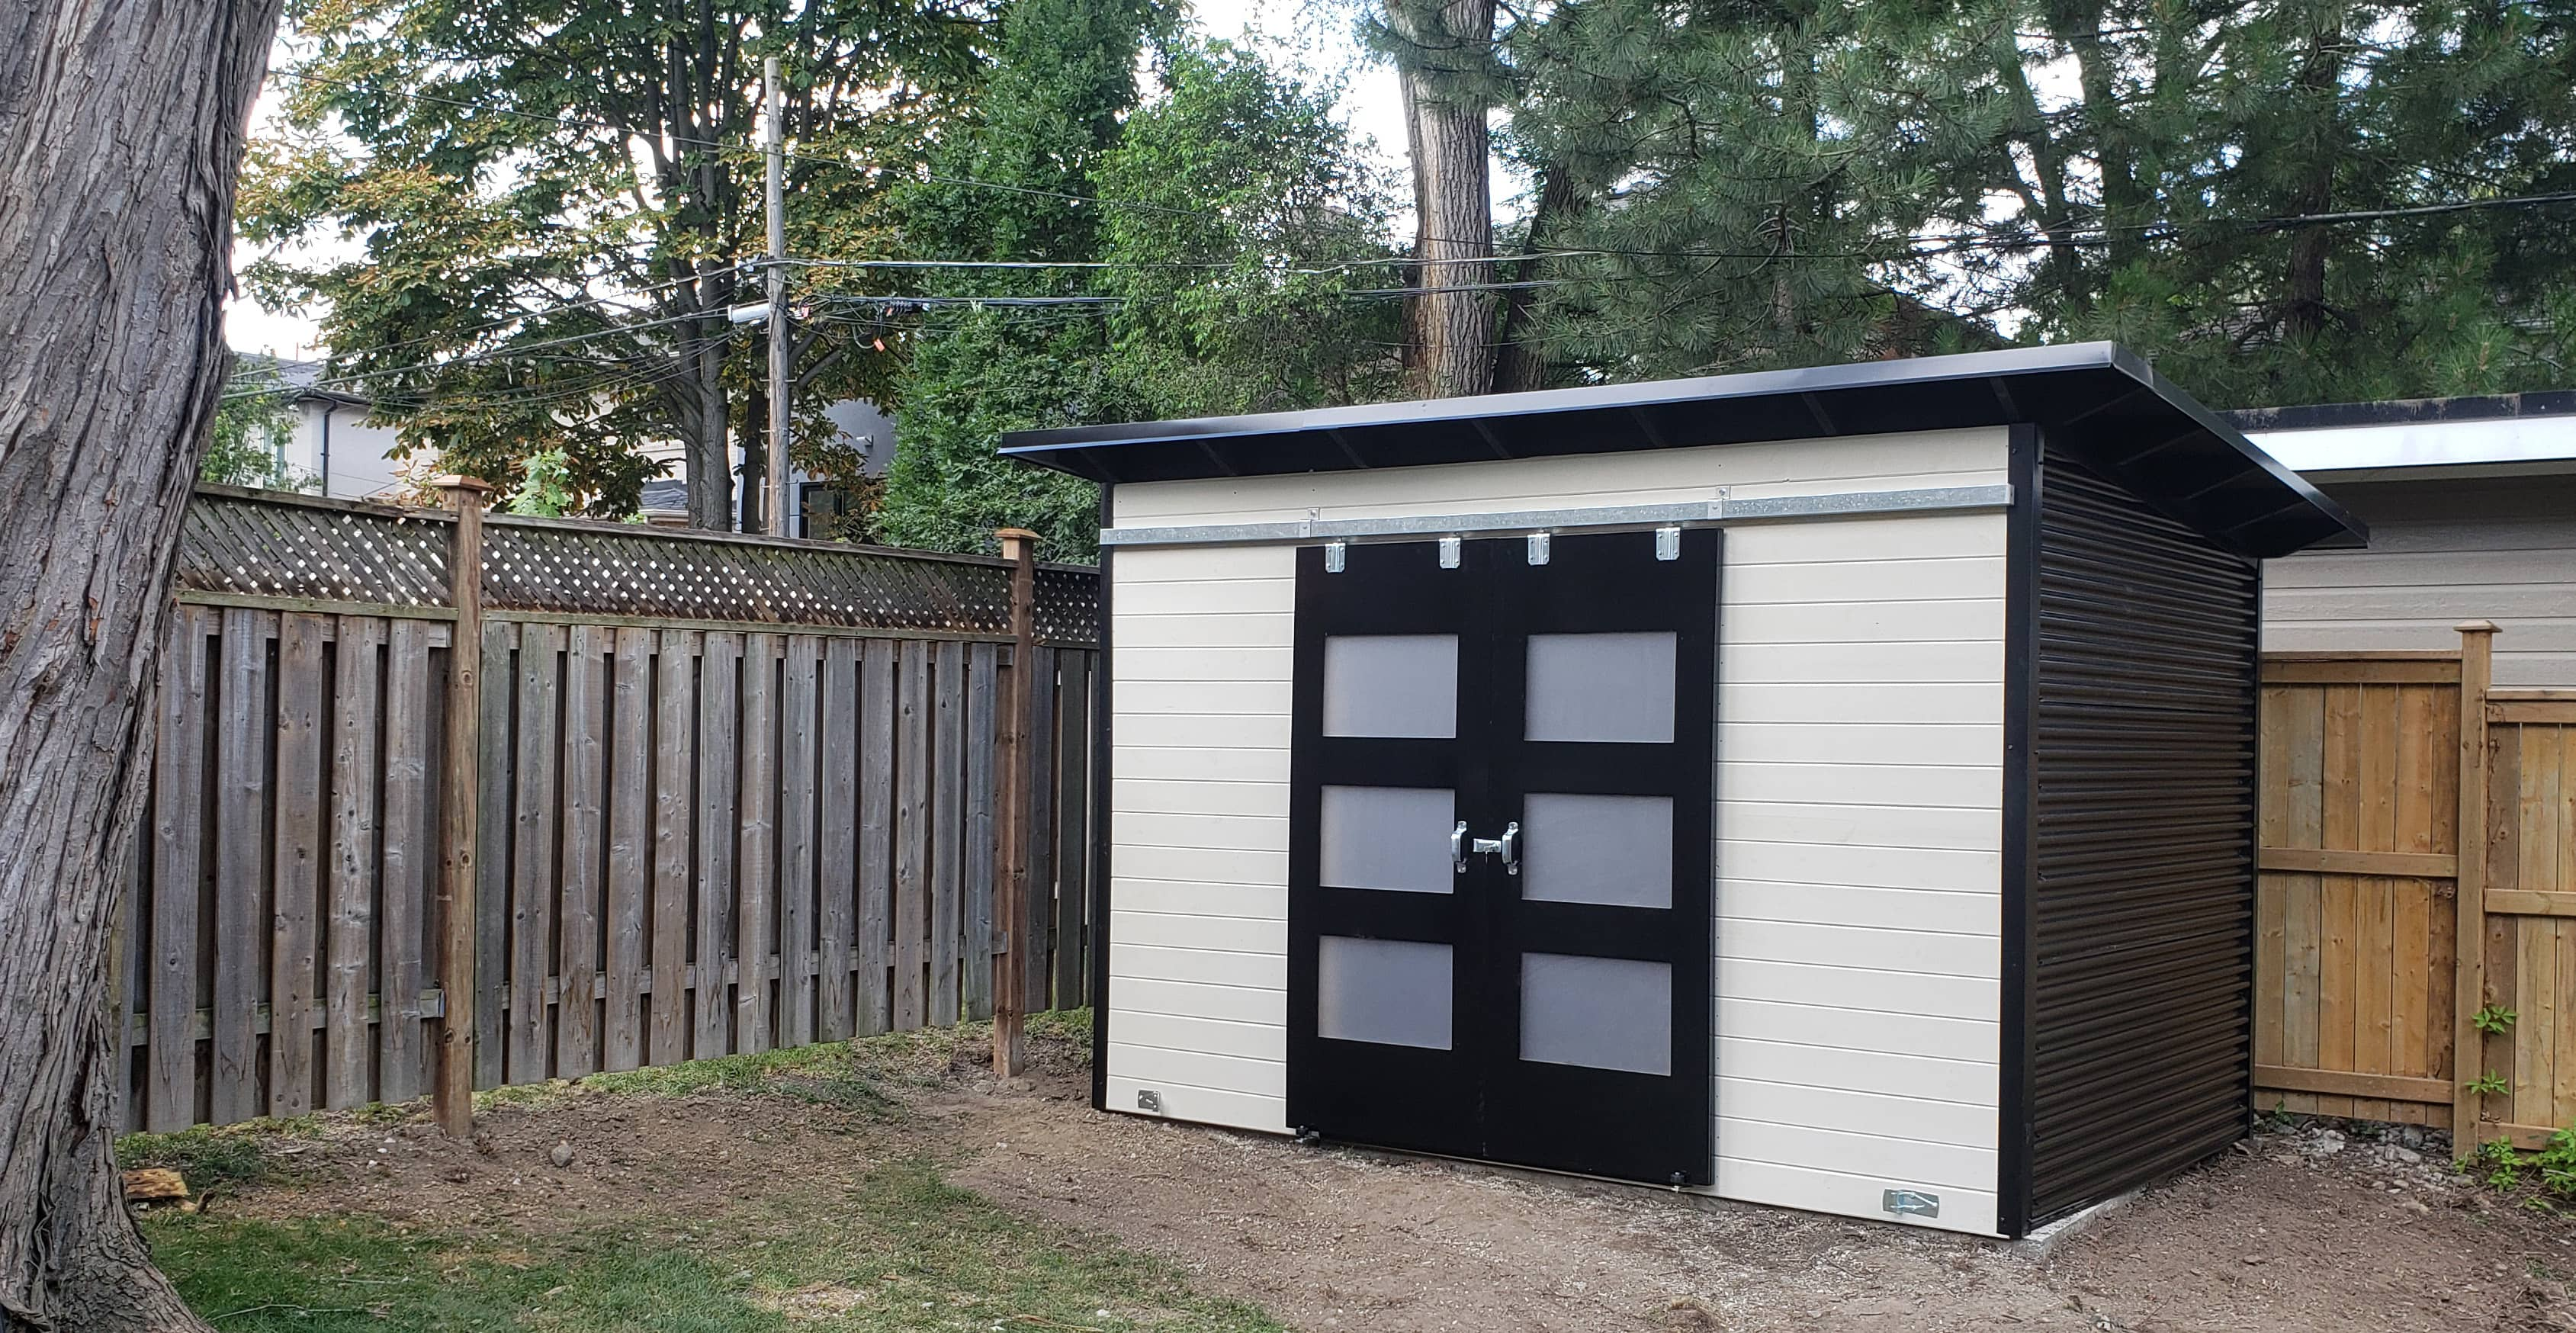 12' x 8' Essential Garden Shed with White Satin Stain and Jet Black Steel